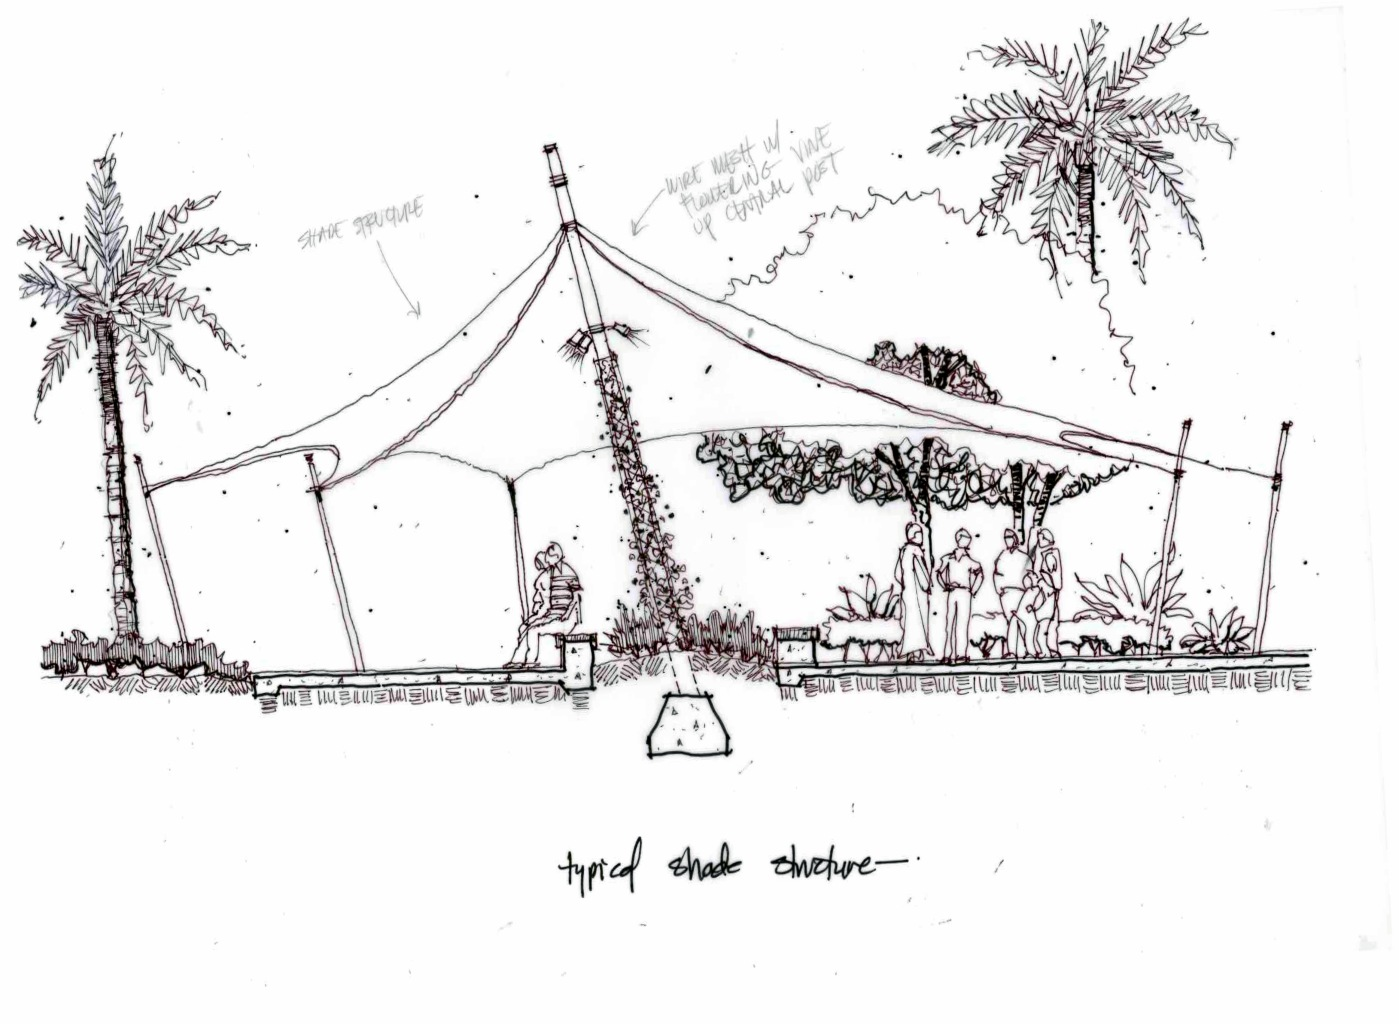 Shade STructure 1